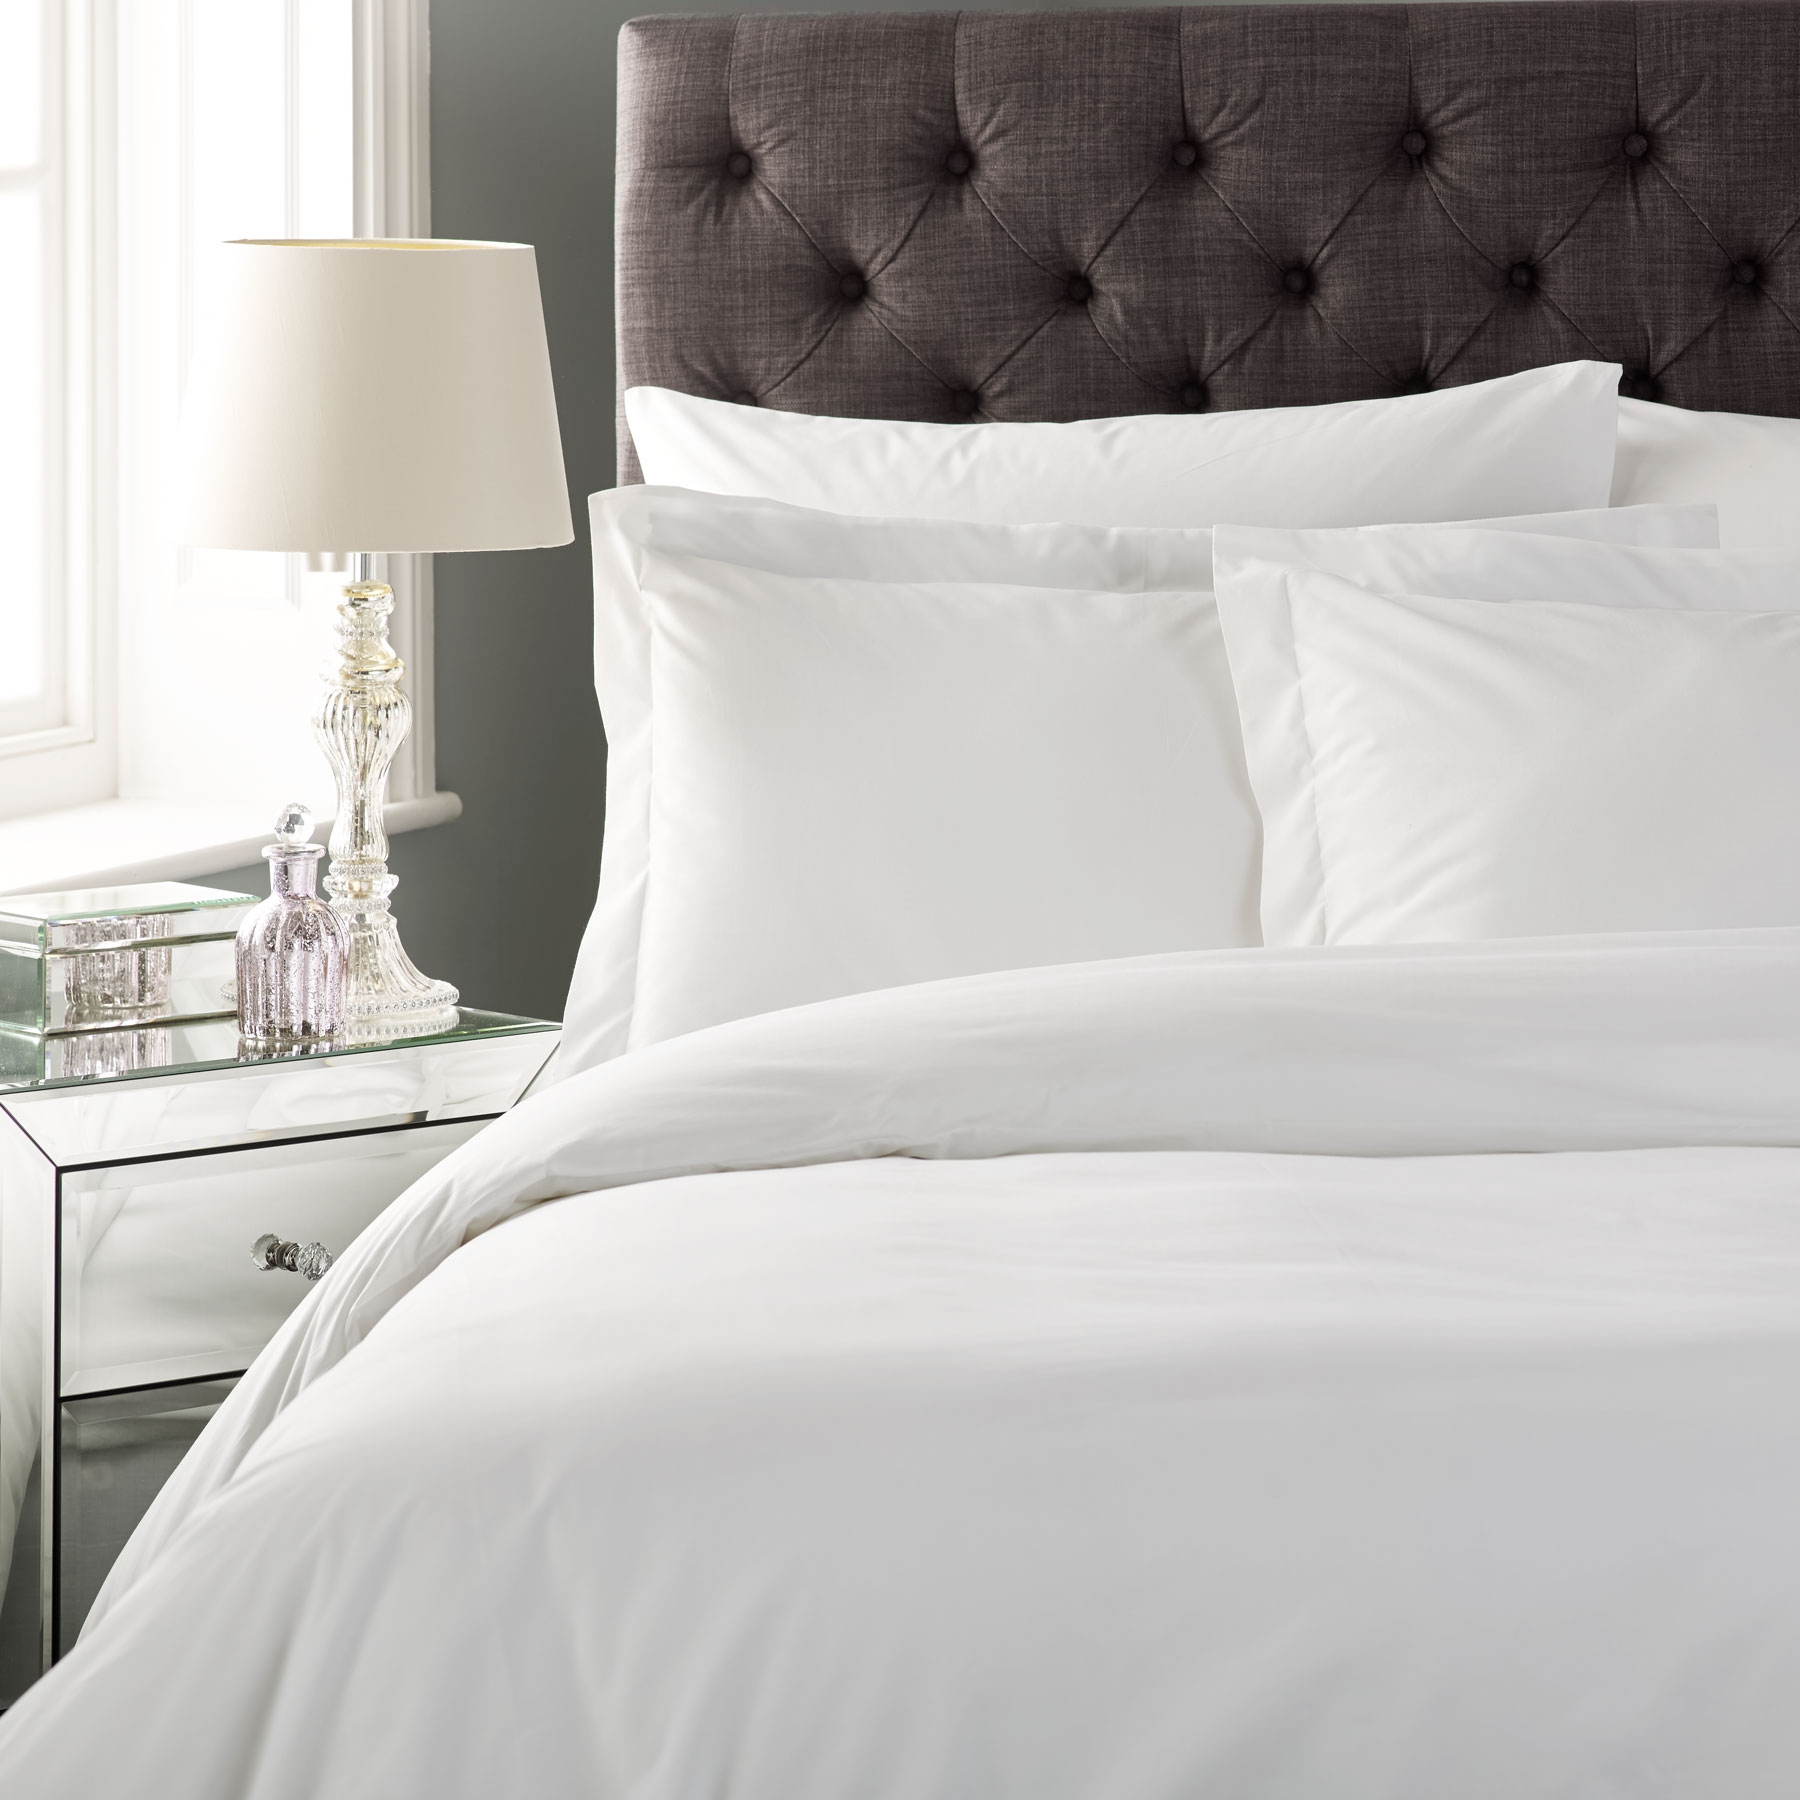 Bed Linen Luxury Bed Linens Perfect For Hotels Wholesale Prices